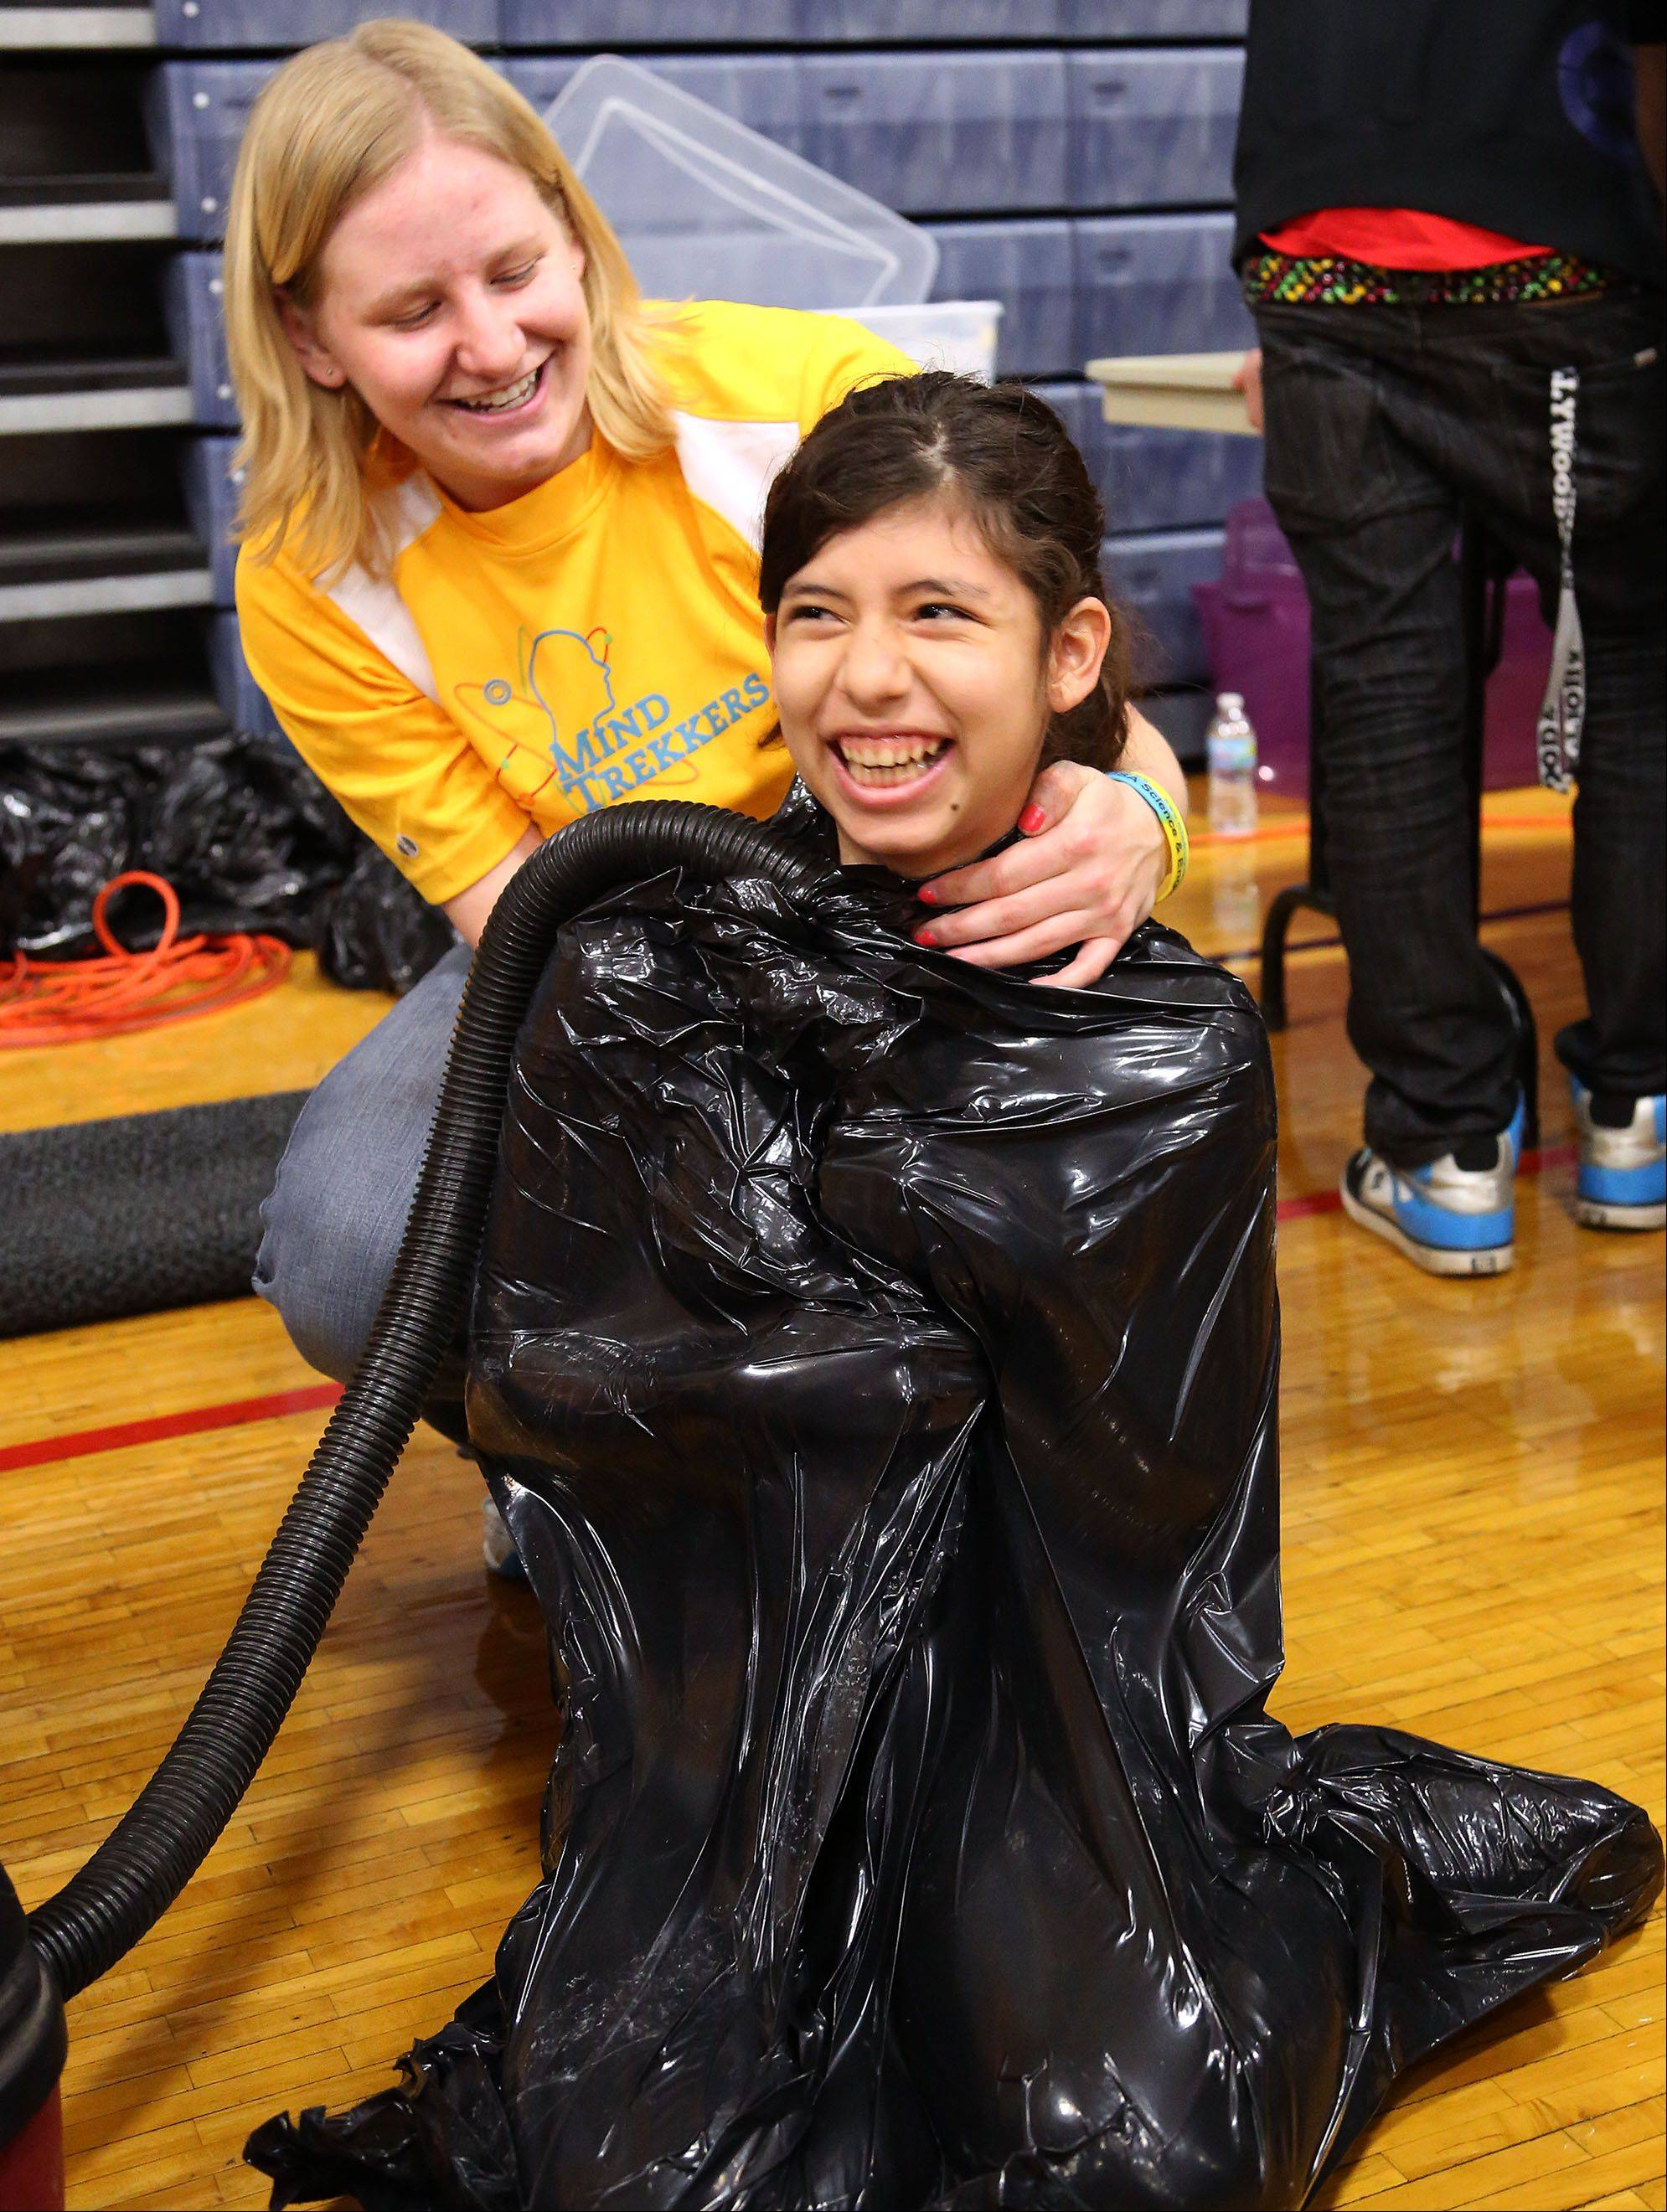 Casandra Ronning of Park West School in Round Lake is vaccum sealed into a garbage bag by Michigan Tech student Olivia Zajac during a science fair called Mind Trekkers led by the students and faculty of Michigan Tech University at the College of Lake County Friday.